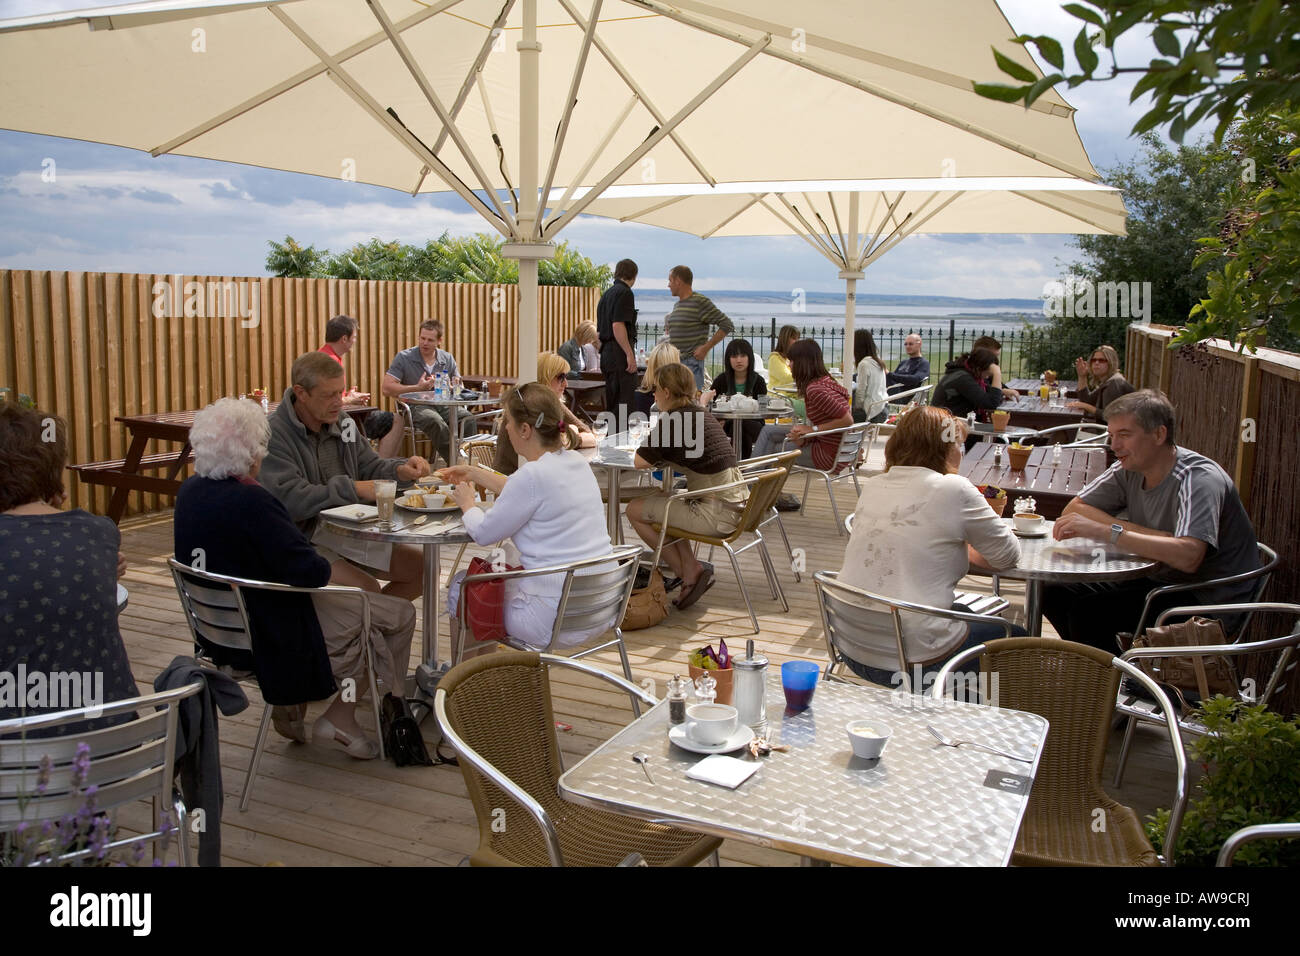 The Grove cafe bistro restaurant terrace overlooking sea front of the Thames estuary Lee Leigh on Sea Essex England - Stock Image